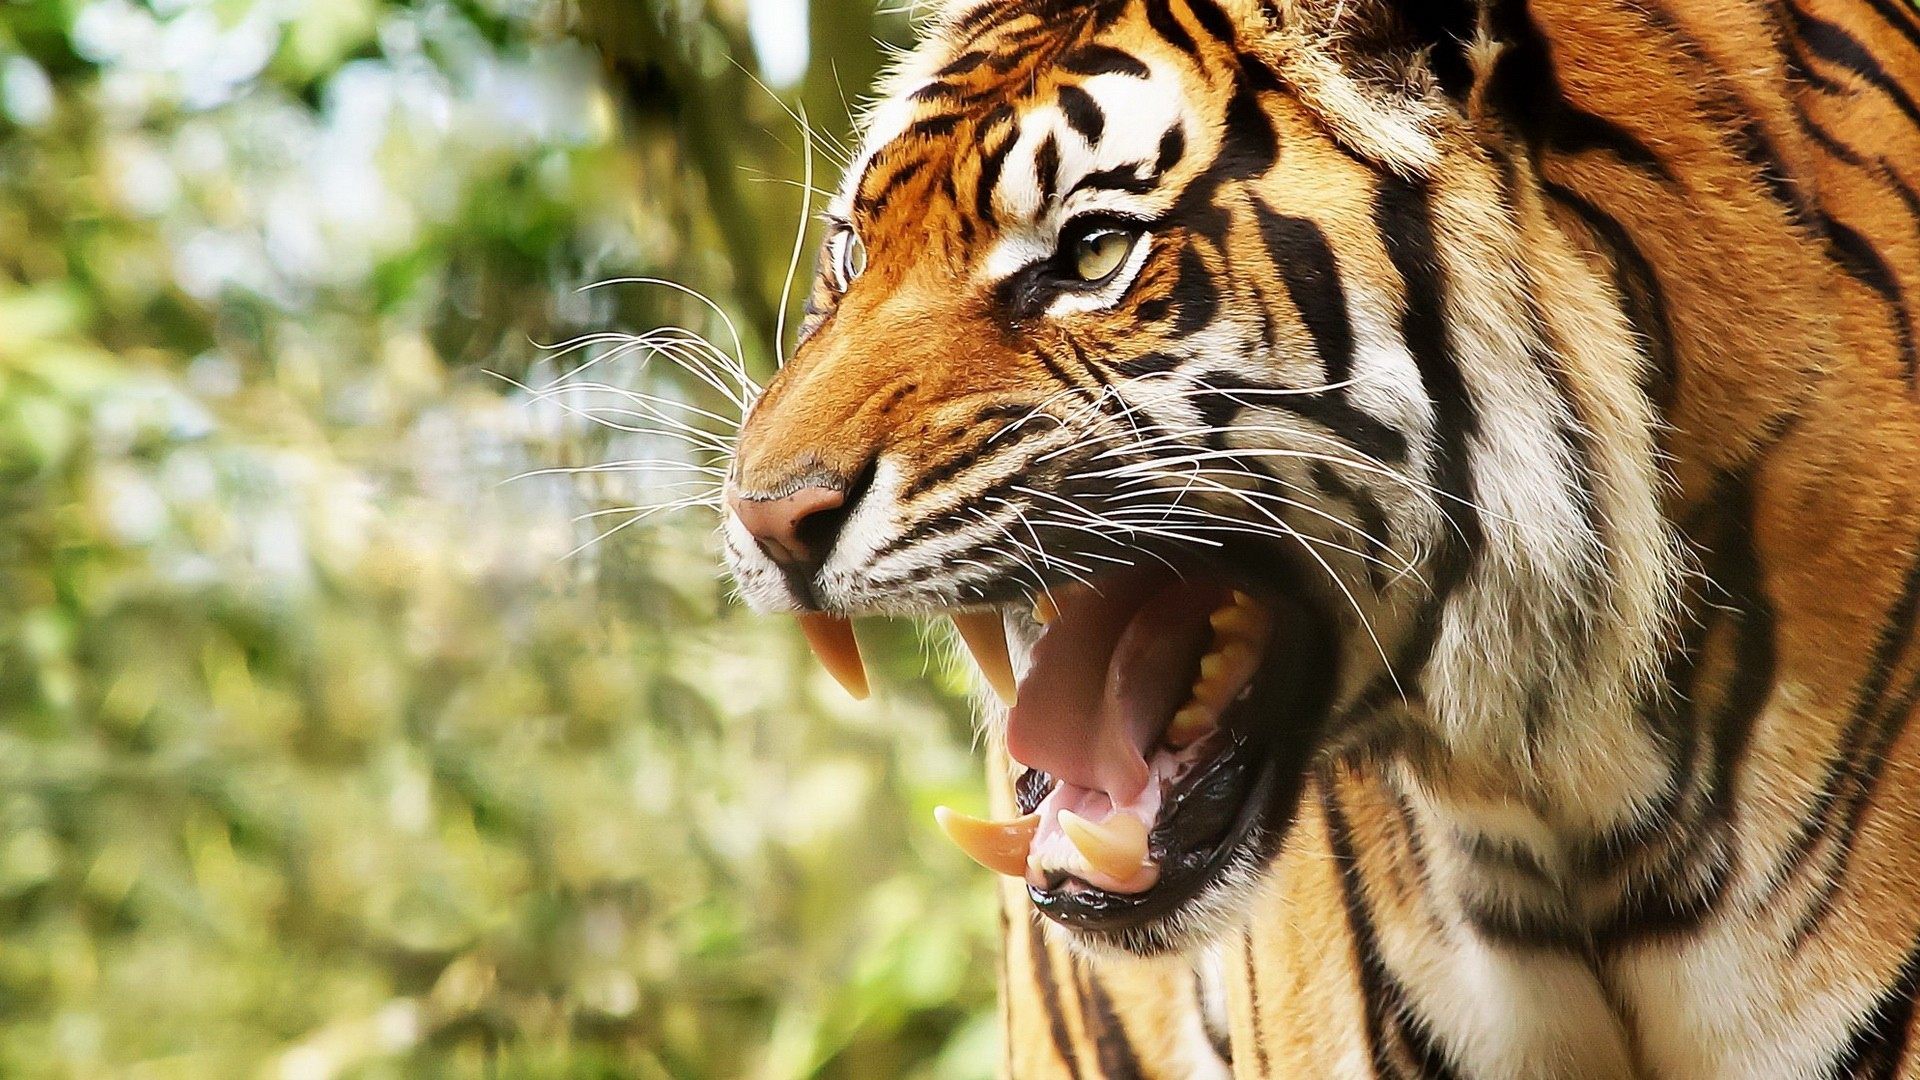 butterfly plain tiger hd wallpapers for desktop : wallpapers tiger